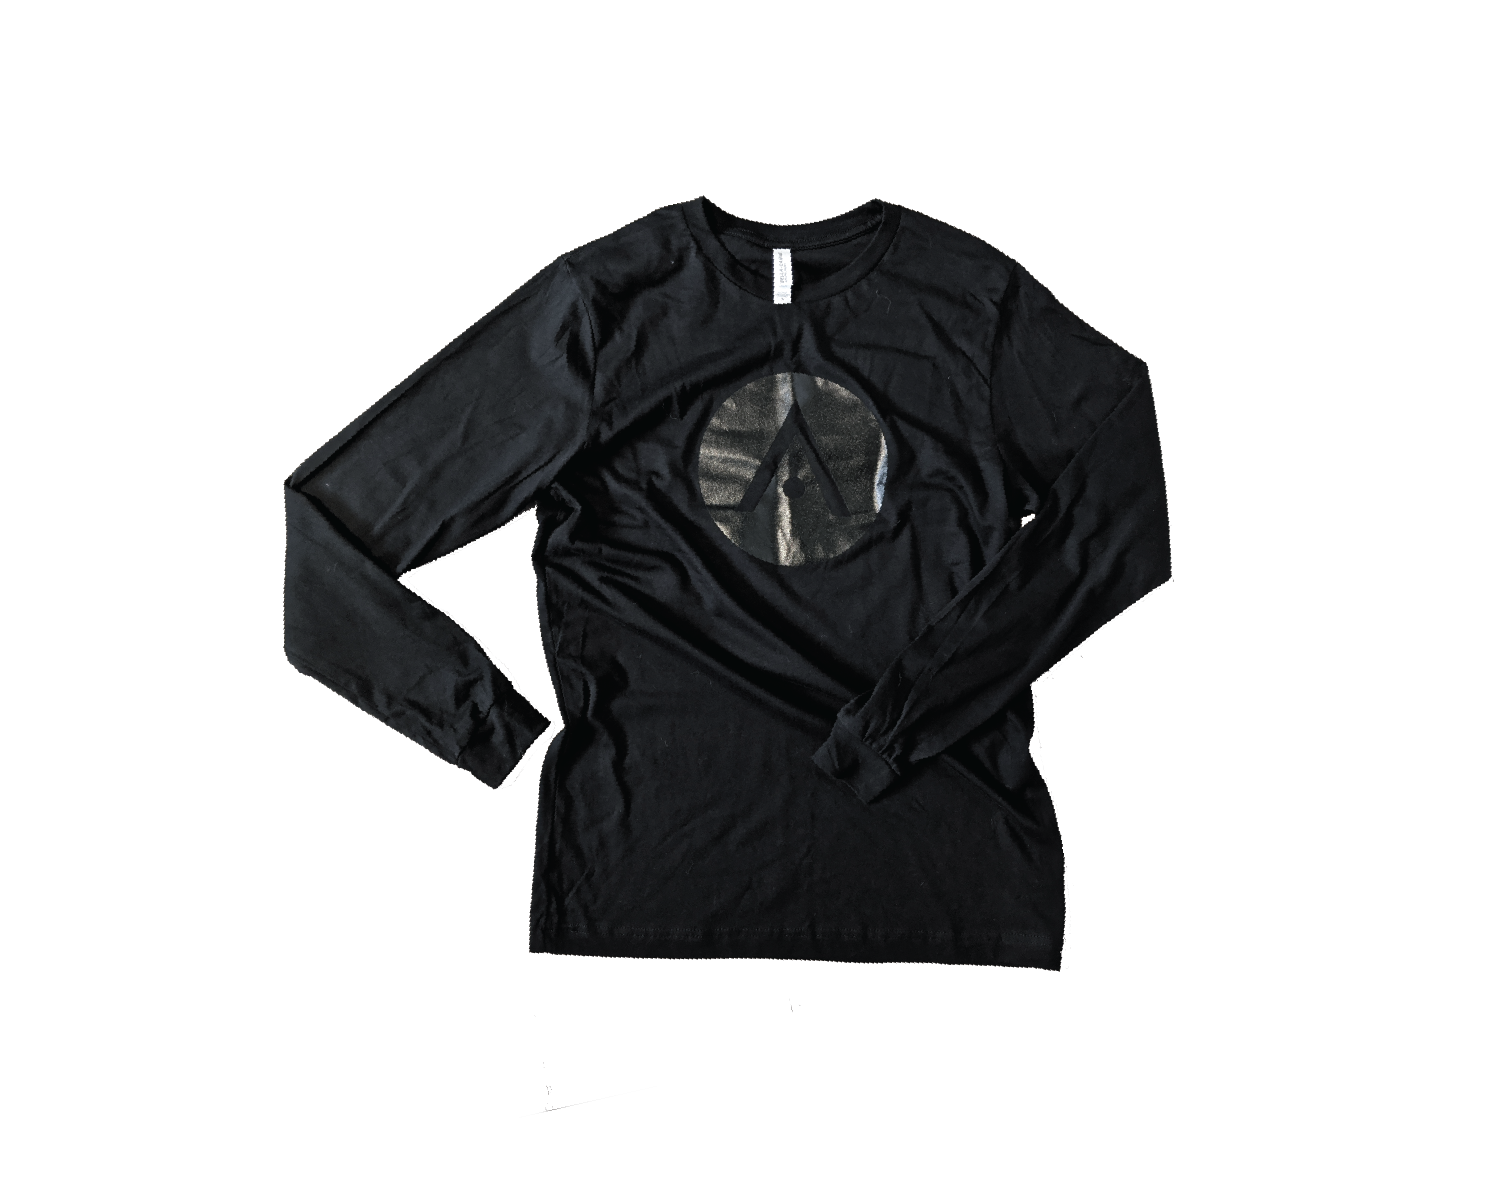 Aveda Arts & Sciences Institutes Long Sleeve